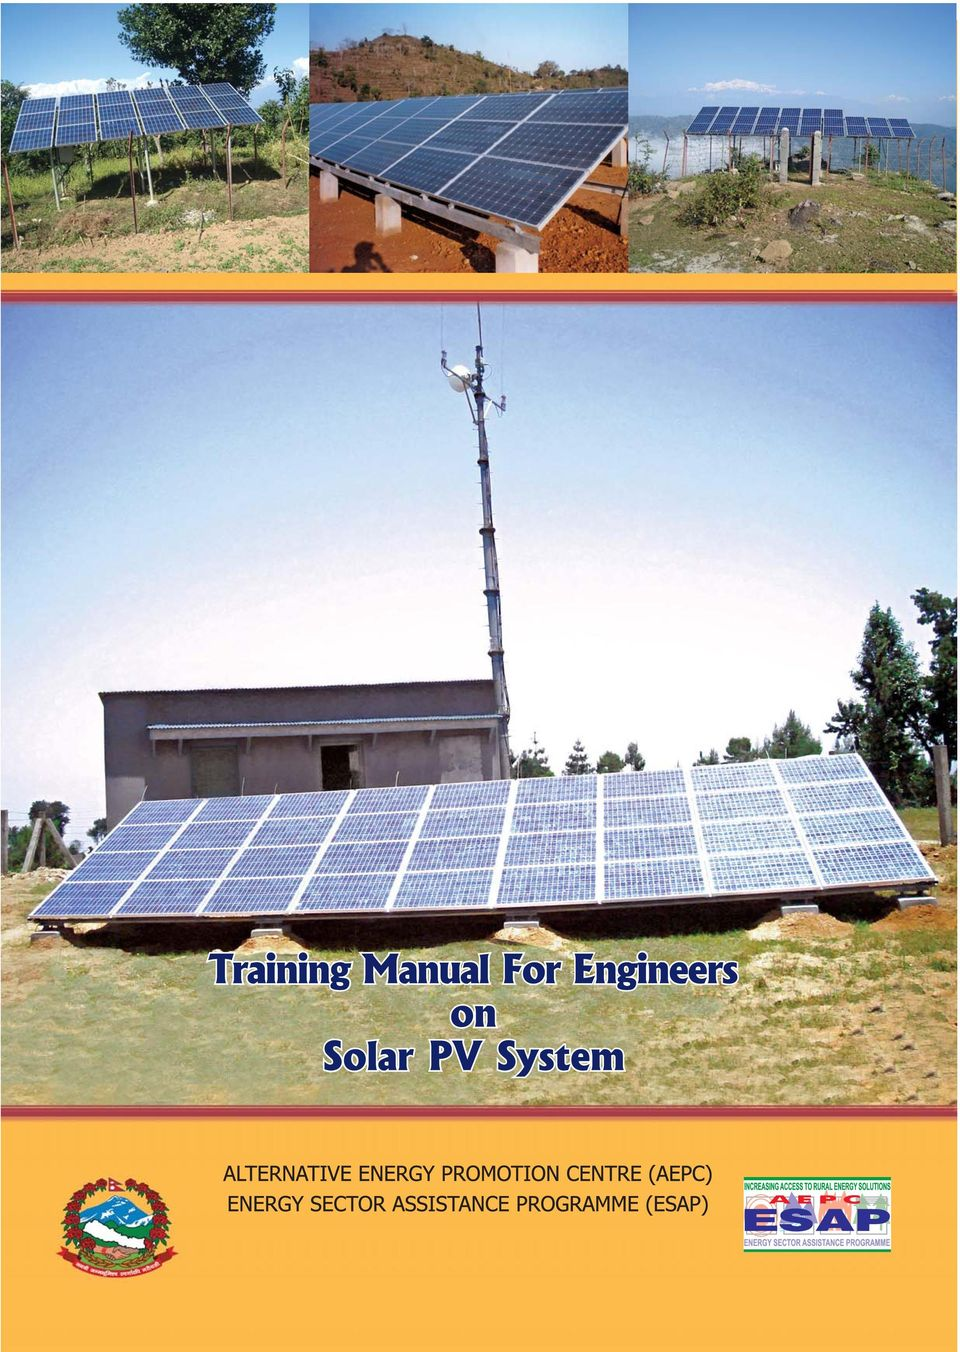 [Ebook Điện Mặt Trời ] : Training Manual for Engineers on Solar PV System